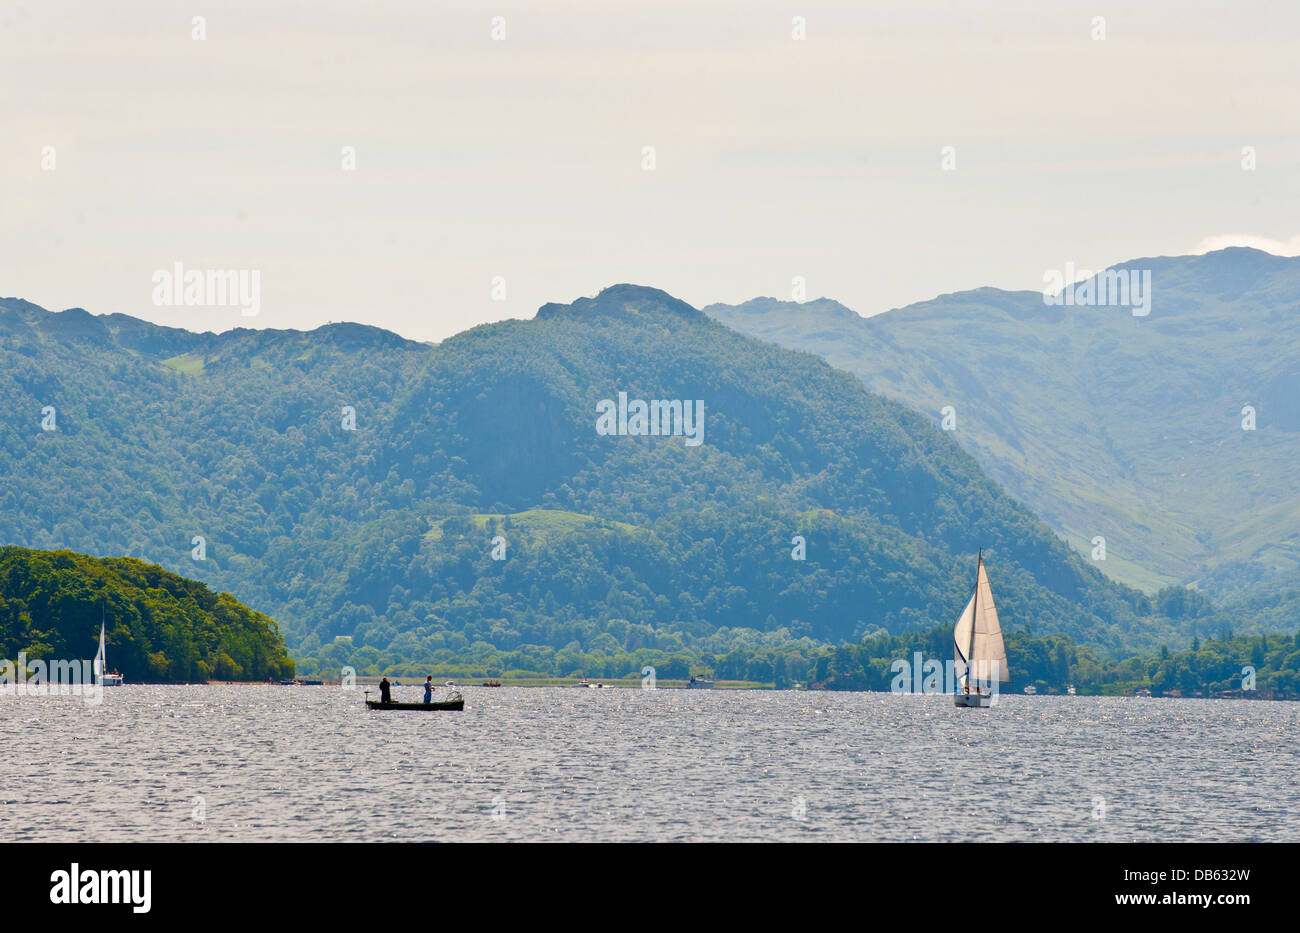 Fishermen in a boat and a yacht sailing on Lake Derwentwater in Keswick in the Lake District. - Stock Image